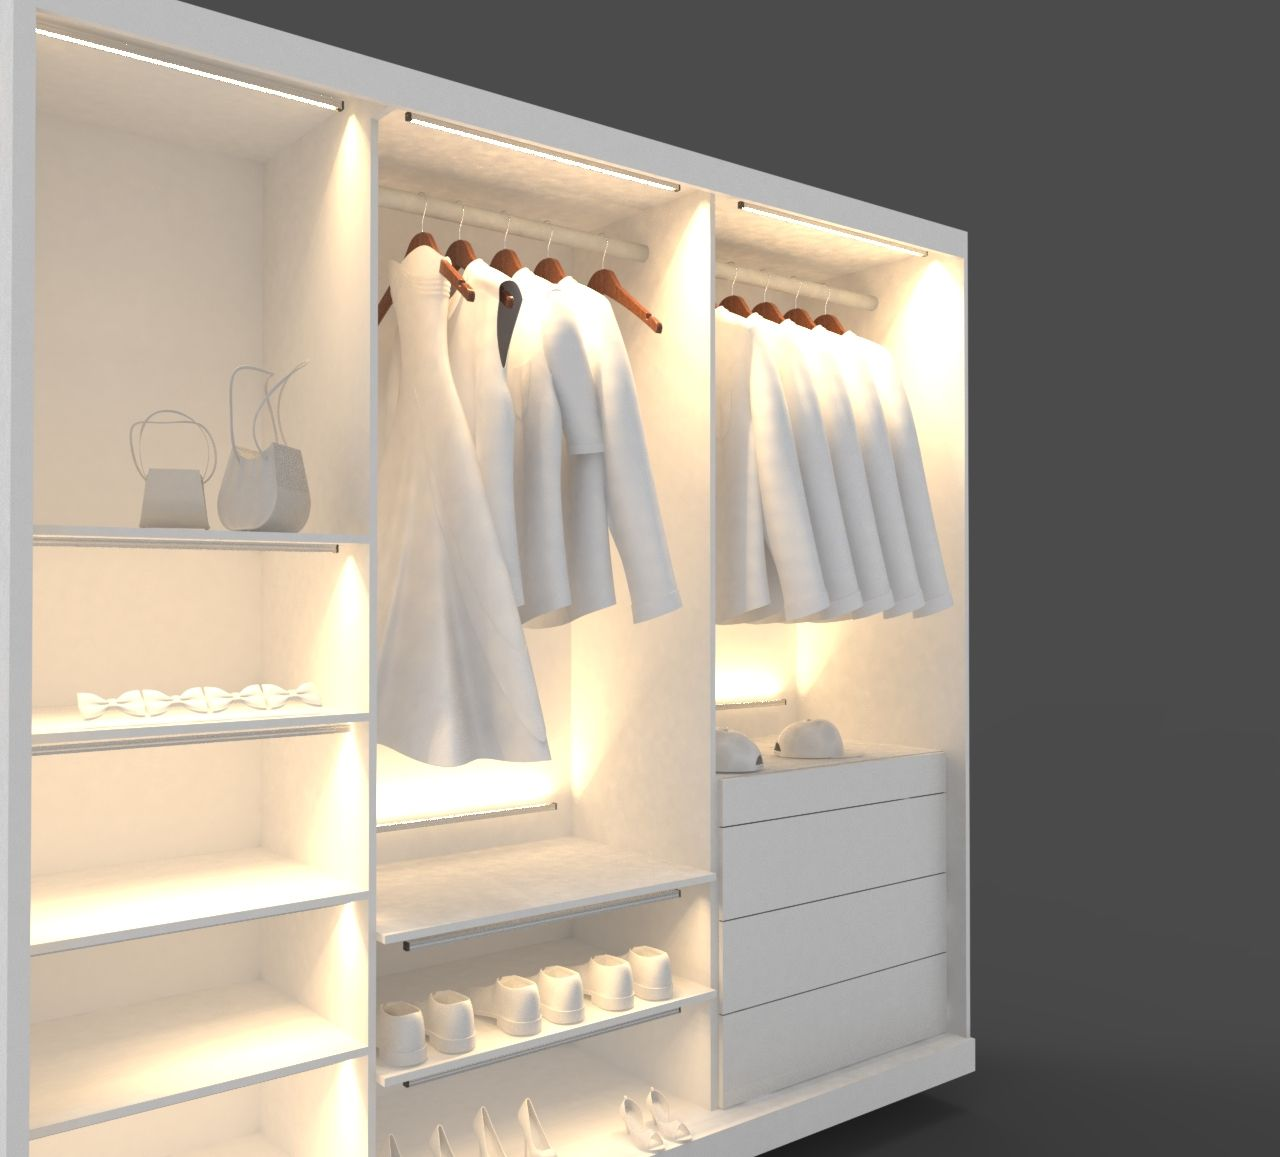 cool decor in bedroom yellow led wooden stylish saving wall simple shoes lighting building space cube stained floating yet walk closet small system racks brown very shelves a